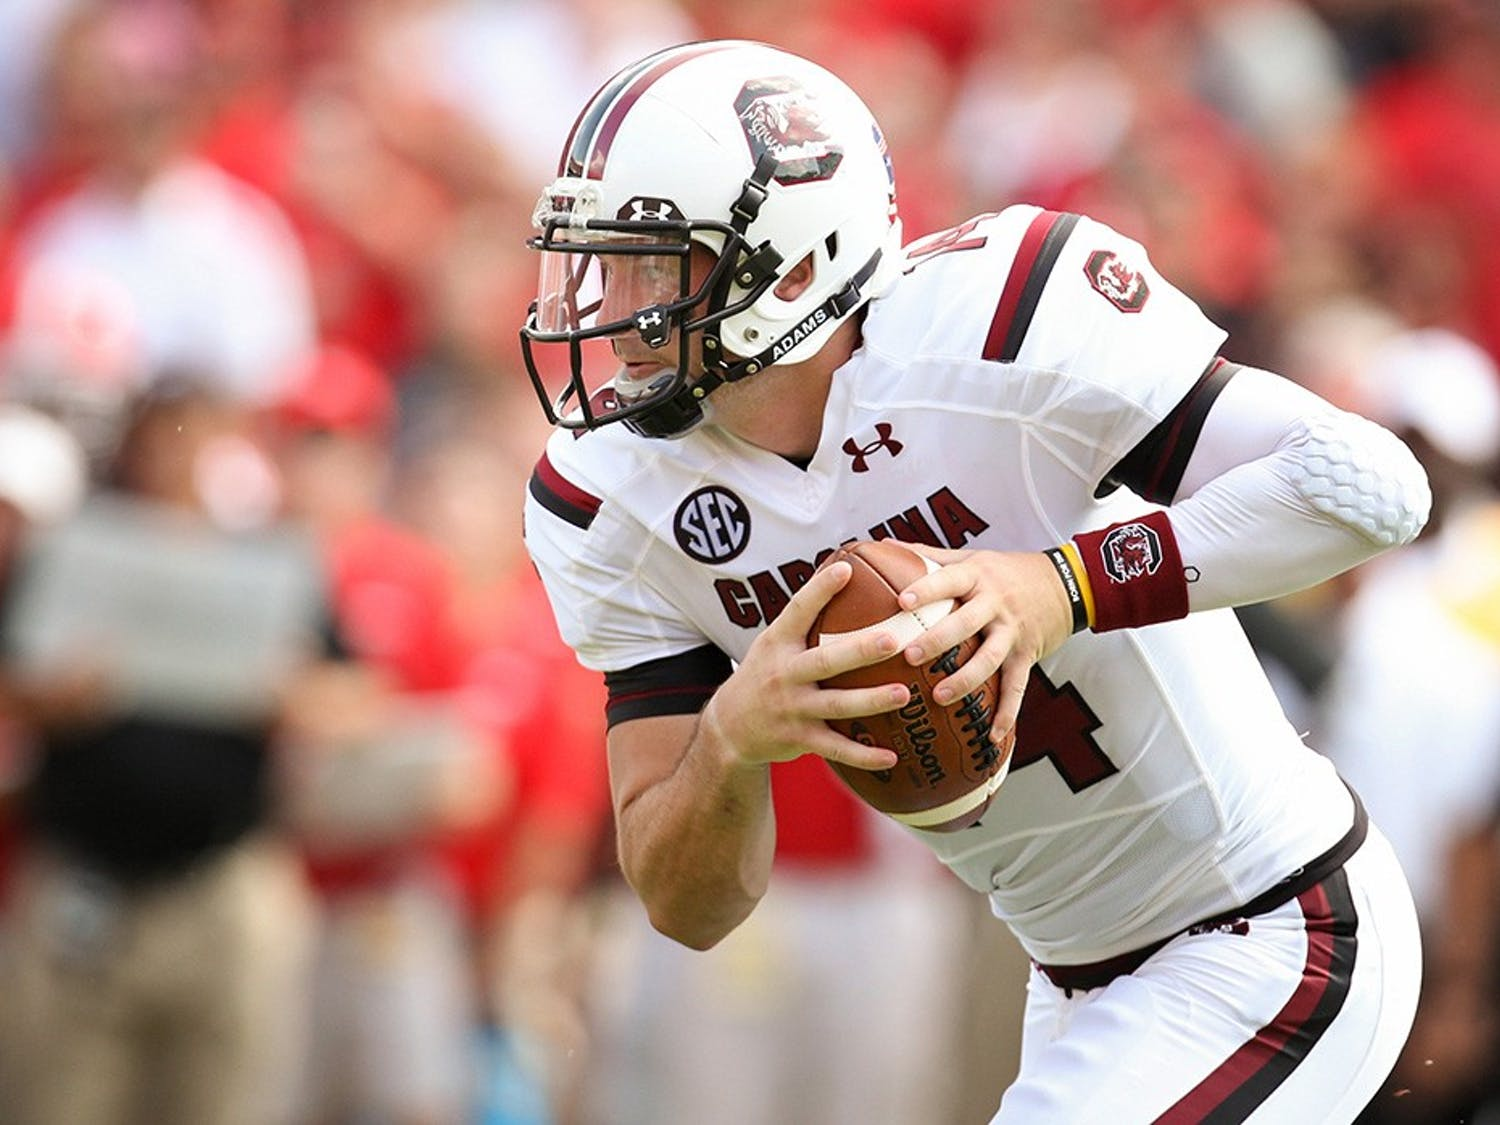 Connor Shaw, the starting quarterback from 2010 to 2013, carrying the ball down the field. Shaw is the winningest quarterback in school history and is one of the 10 new members being added to the South Carolina Athletics Hall of Fame in October.